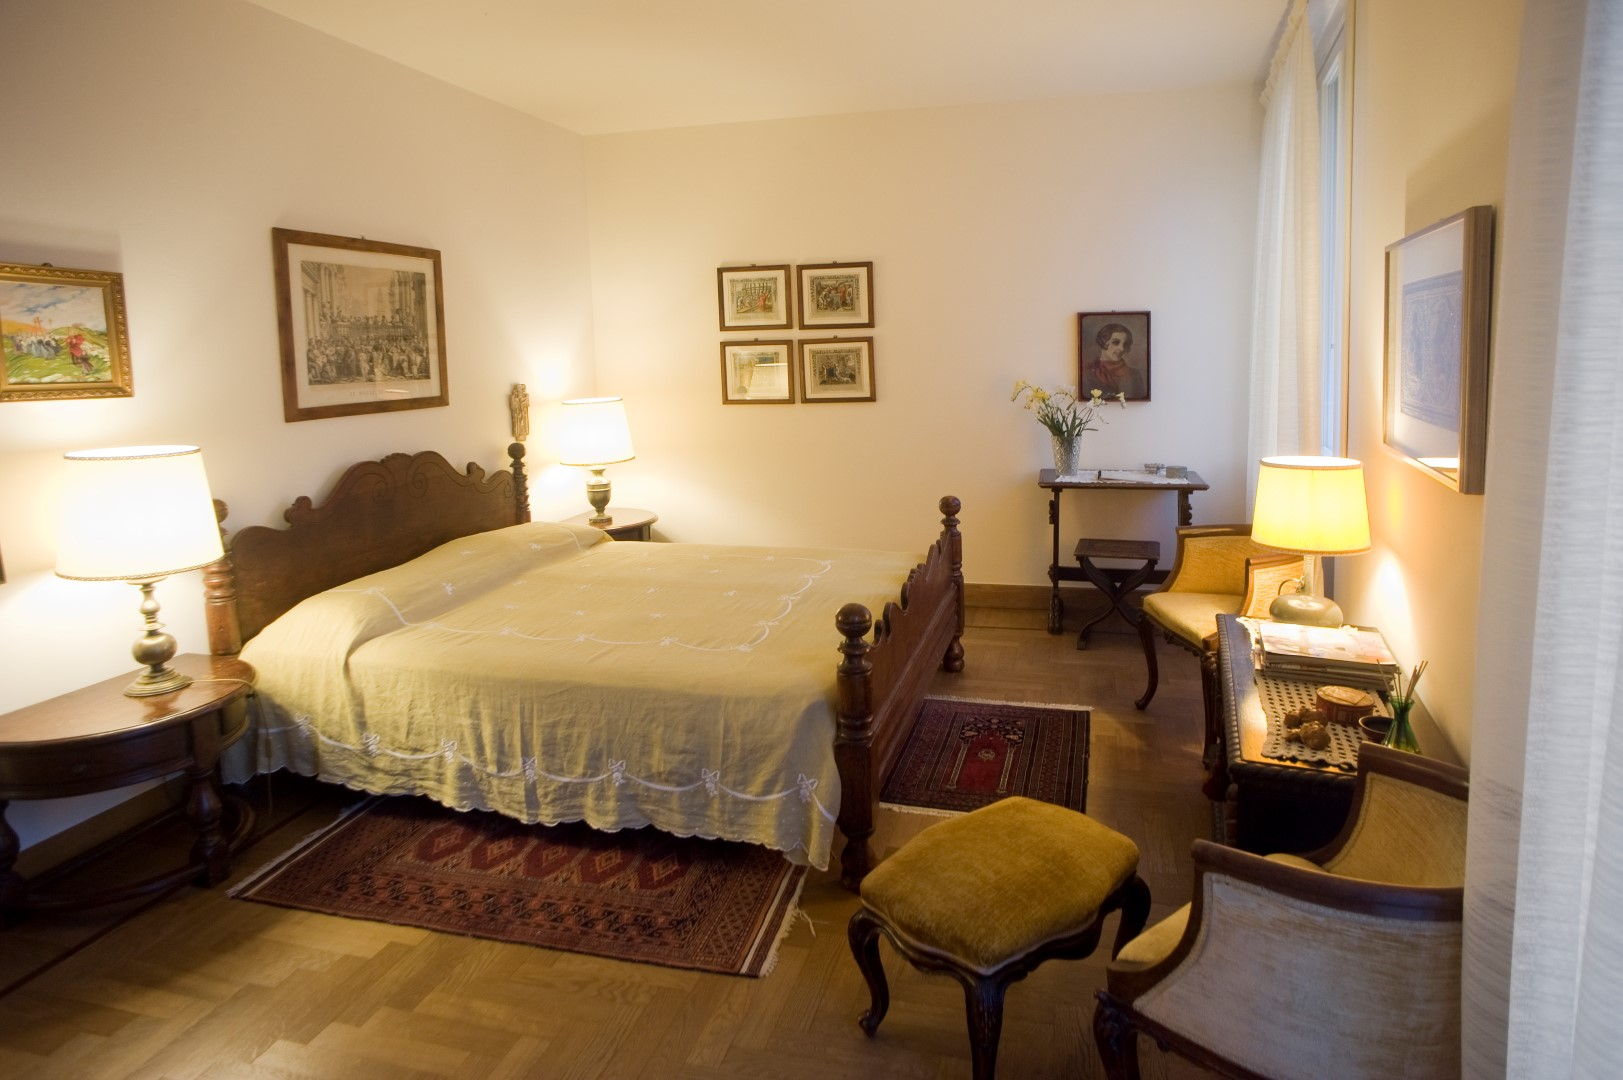 B&b al ponte Vicenza camera matrimoniale 03